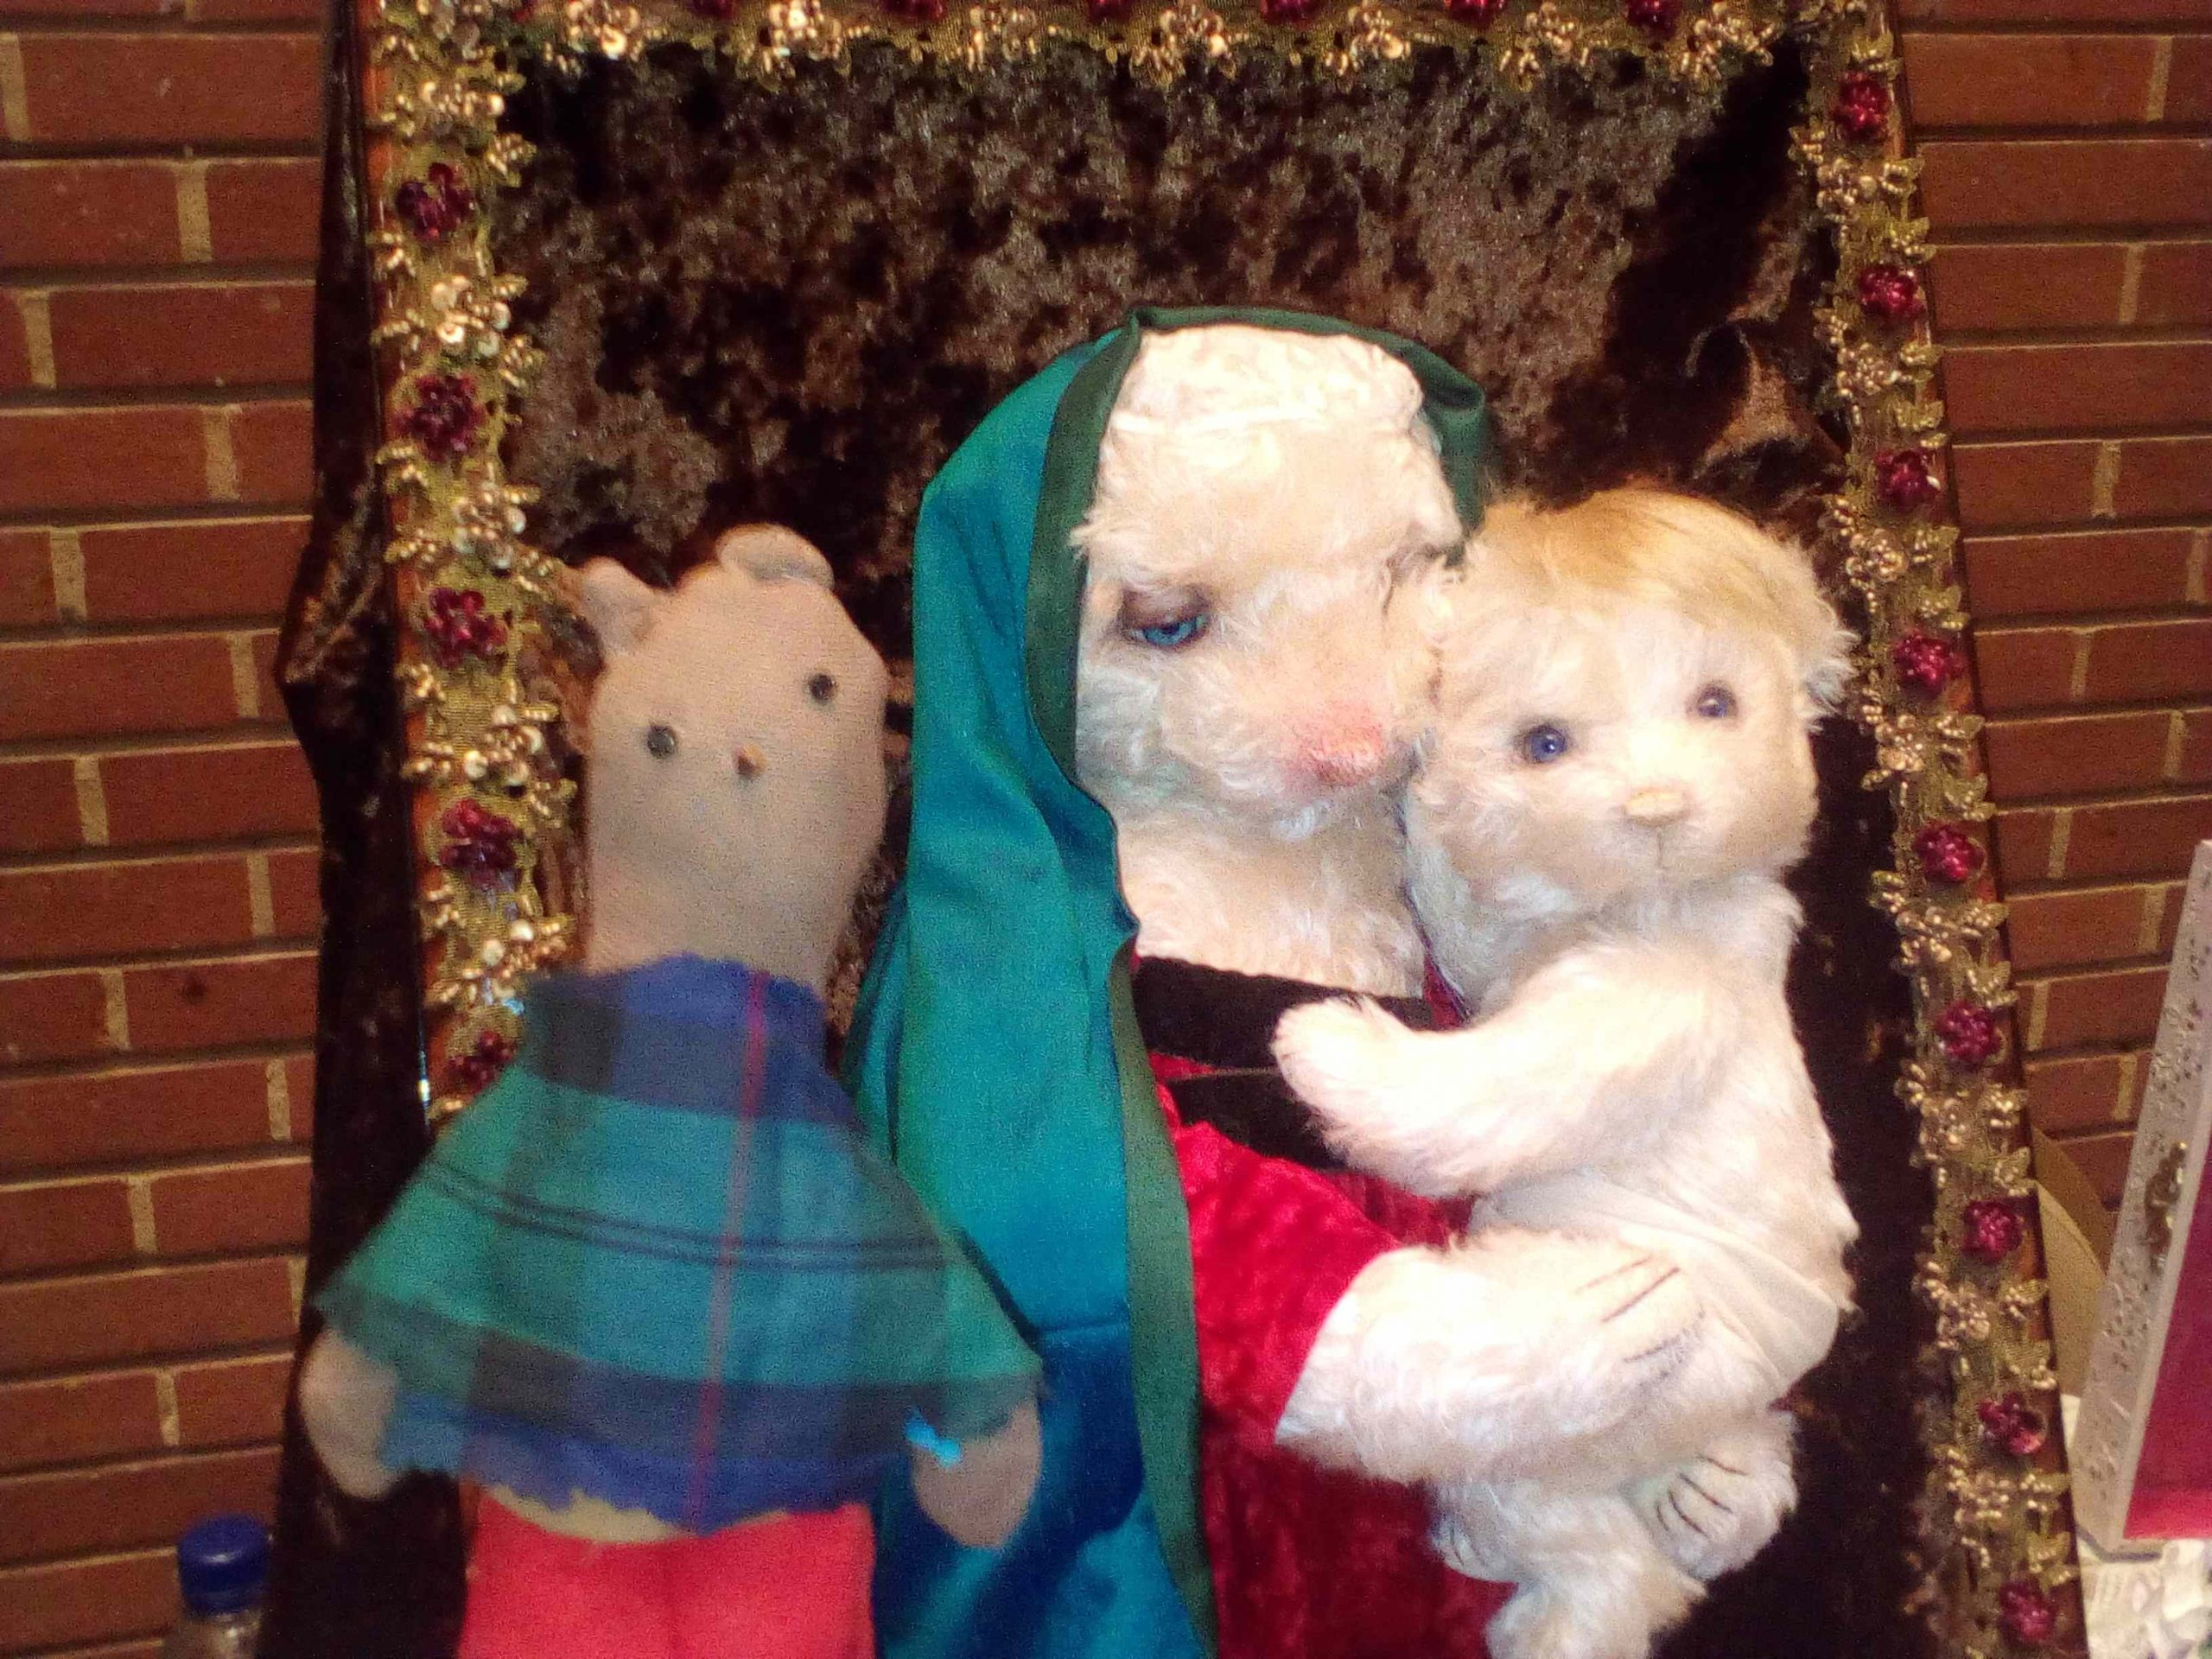 Mini-me version of Bearsac posing with Mary and baby Jesus teddy bears.